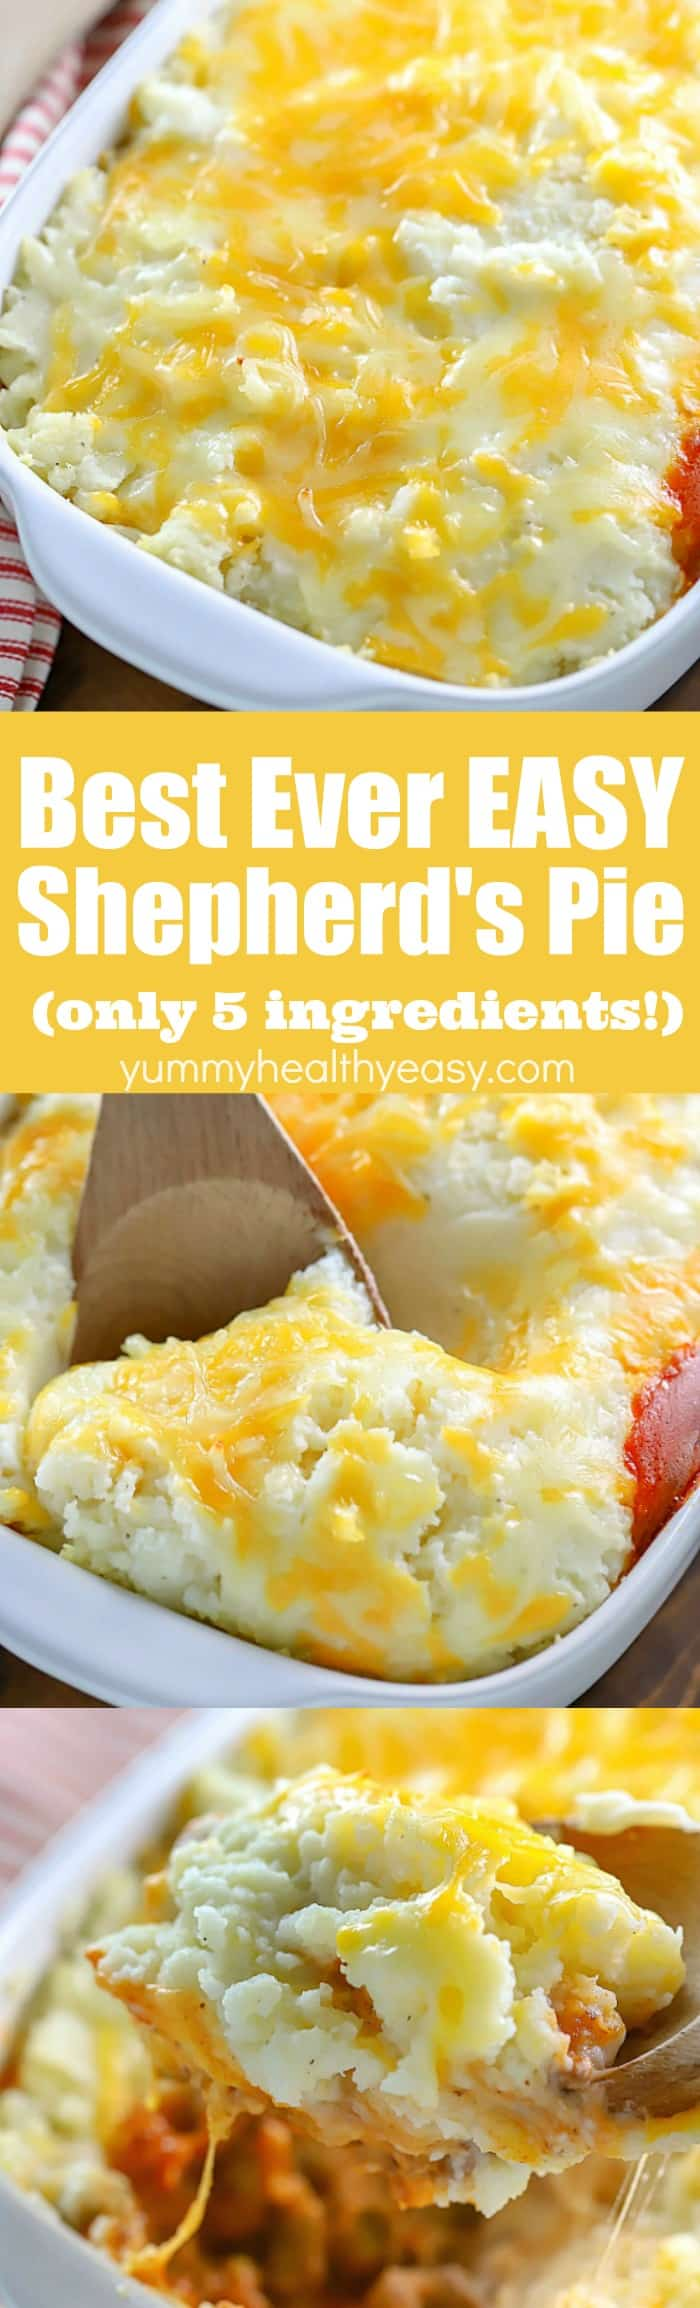 This is seriously the easiest and BEST Easy Shepherd's Pie Recipe EVER! I make this all the time for my boys and it's always a hit! Only FIVE ingredients needed to make this easy comfort food dinner. #dinner #recipe #shepherdspie #casserole #comfortfood #easyrecipe #mashedpotatoes #groundbeef #cheesy